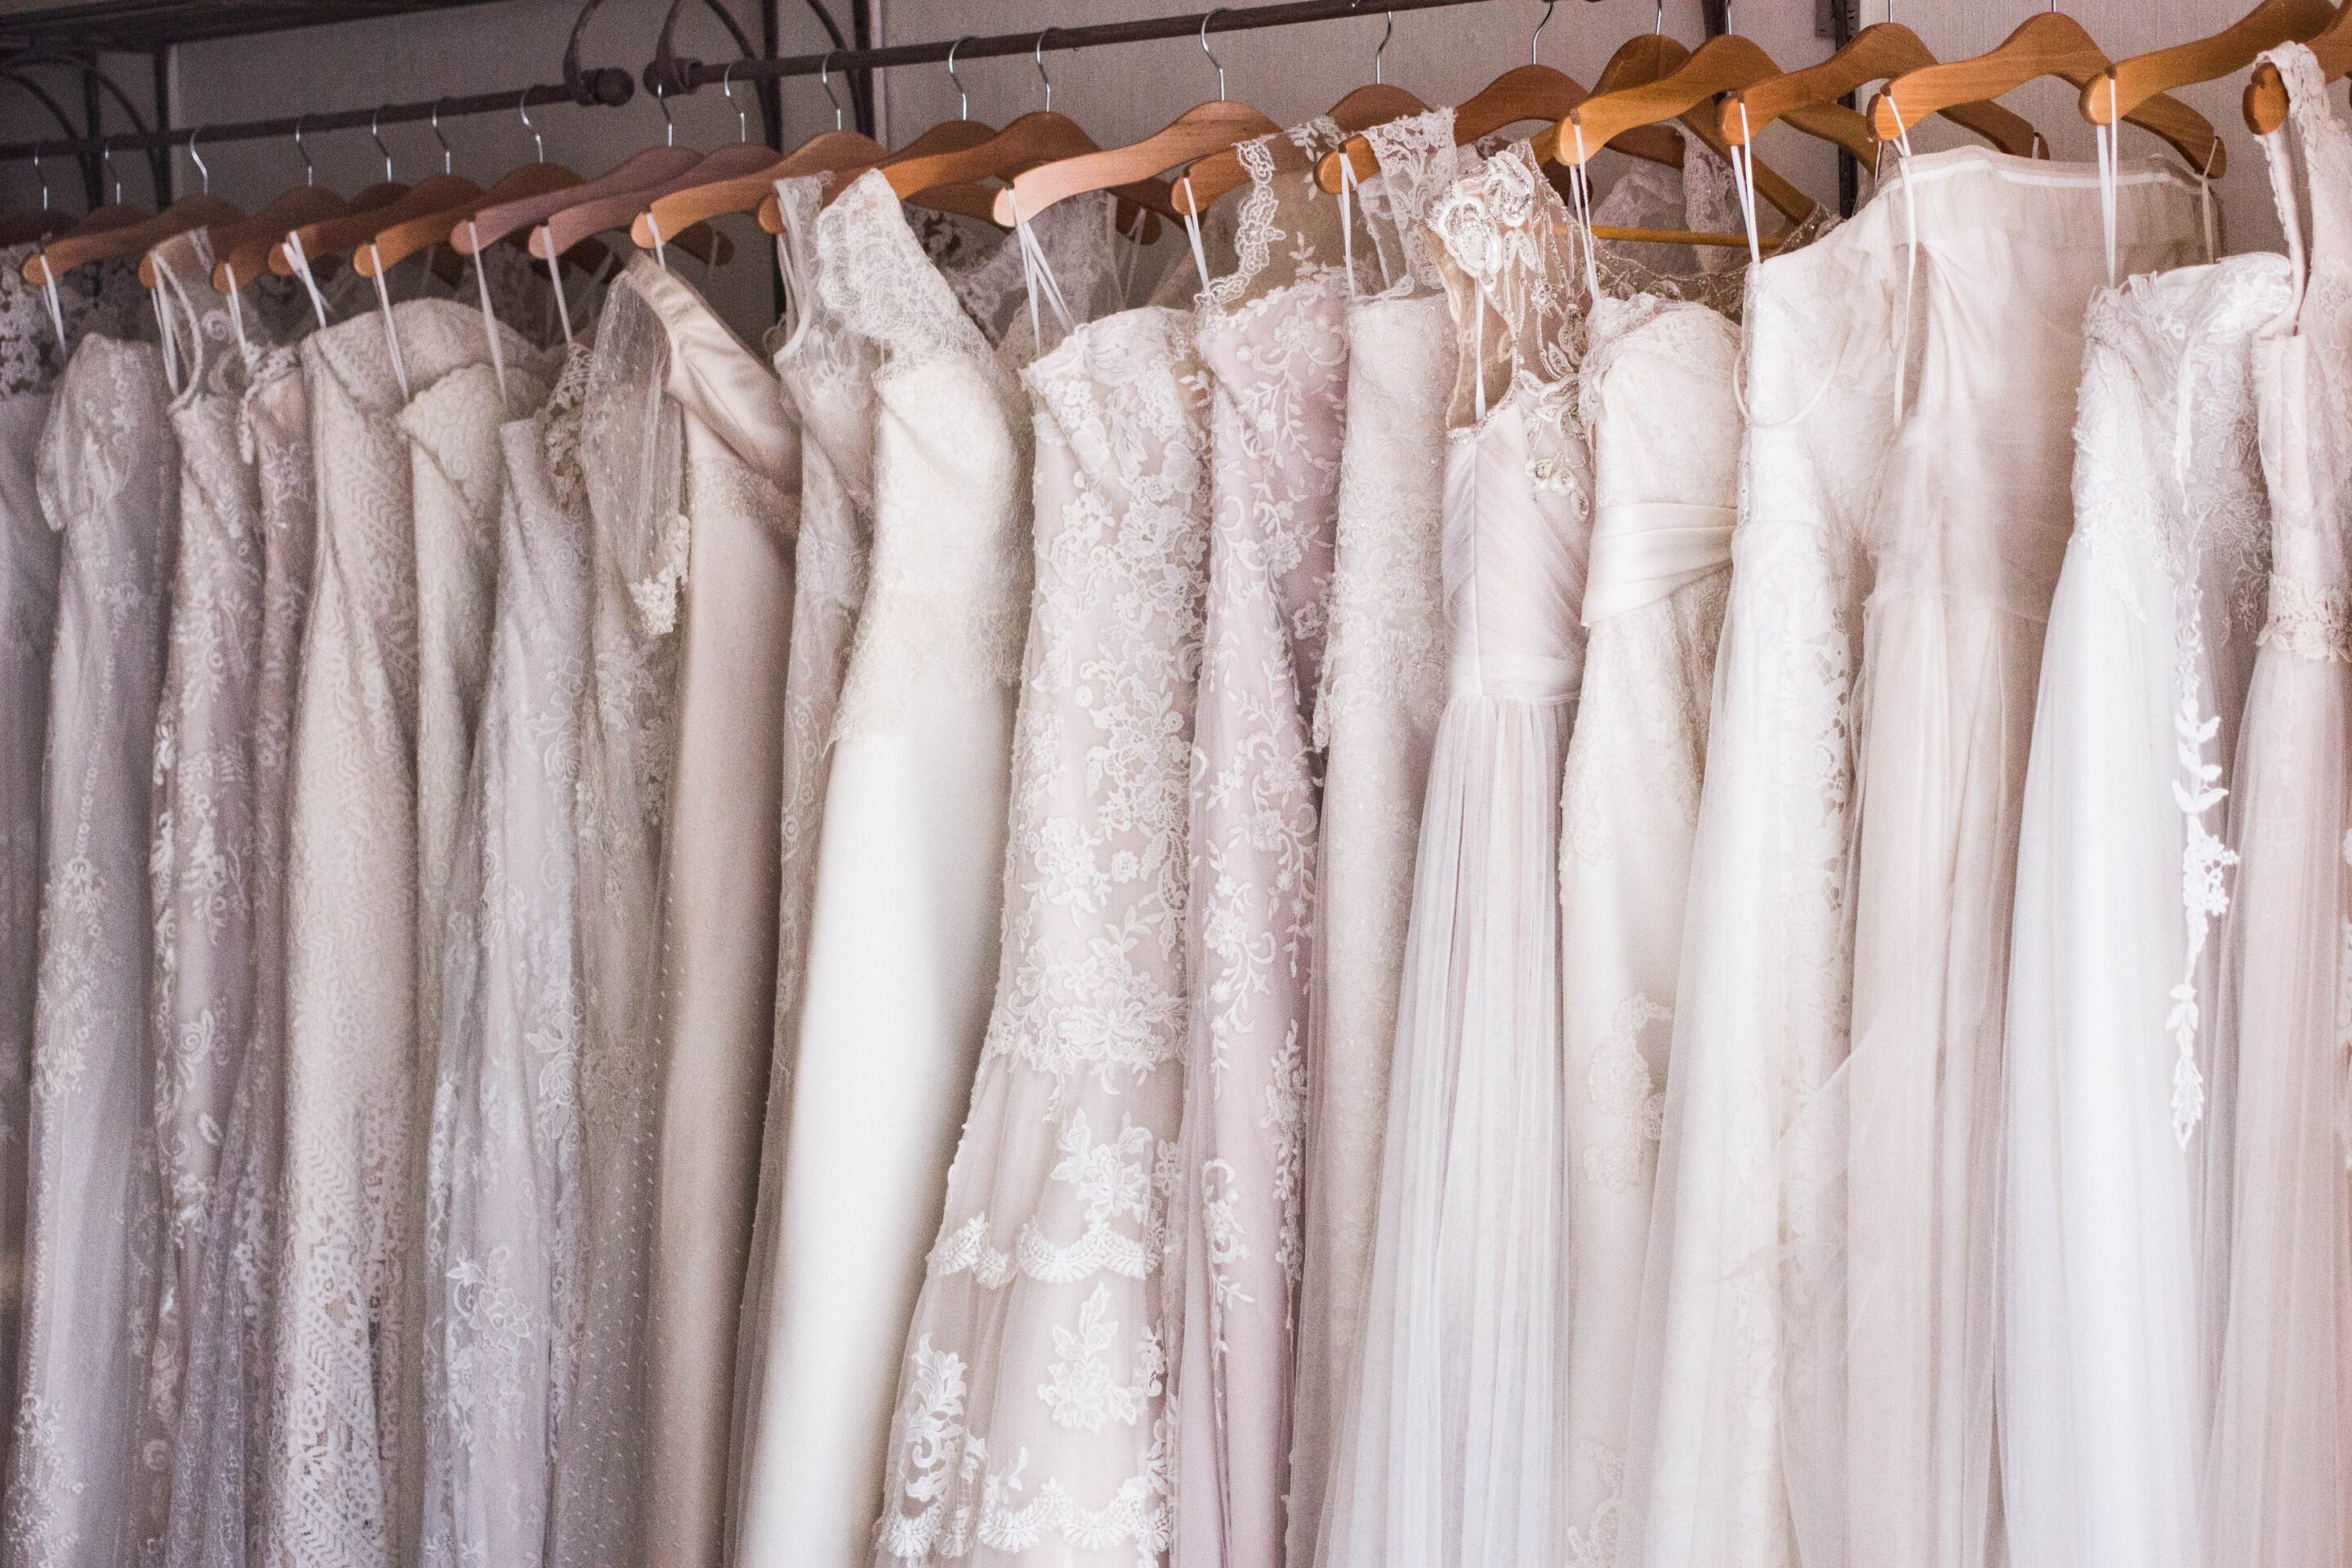 Beautiful dresses neatly hung in a closet